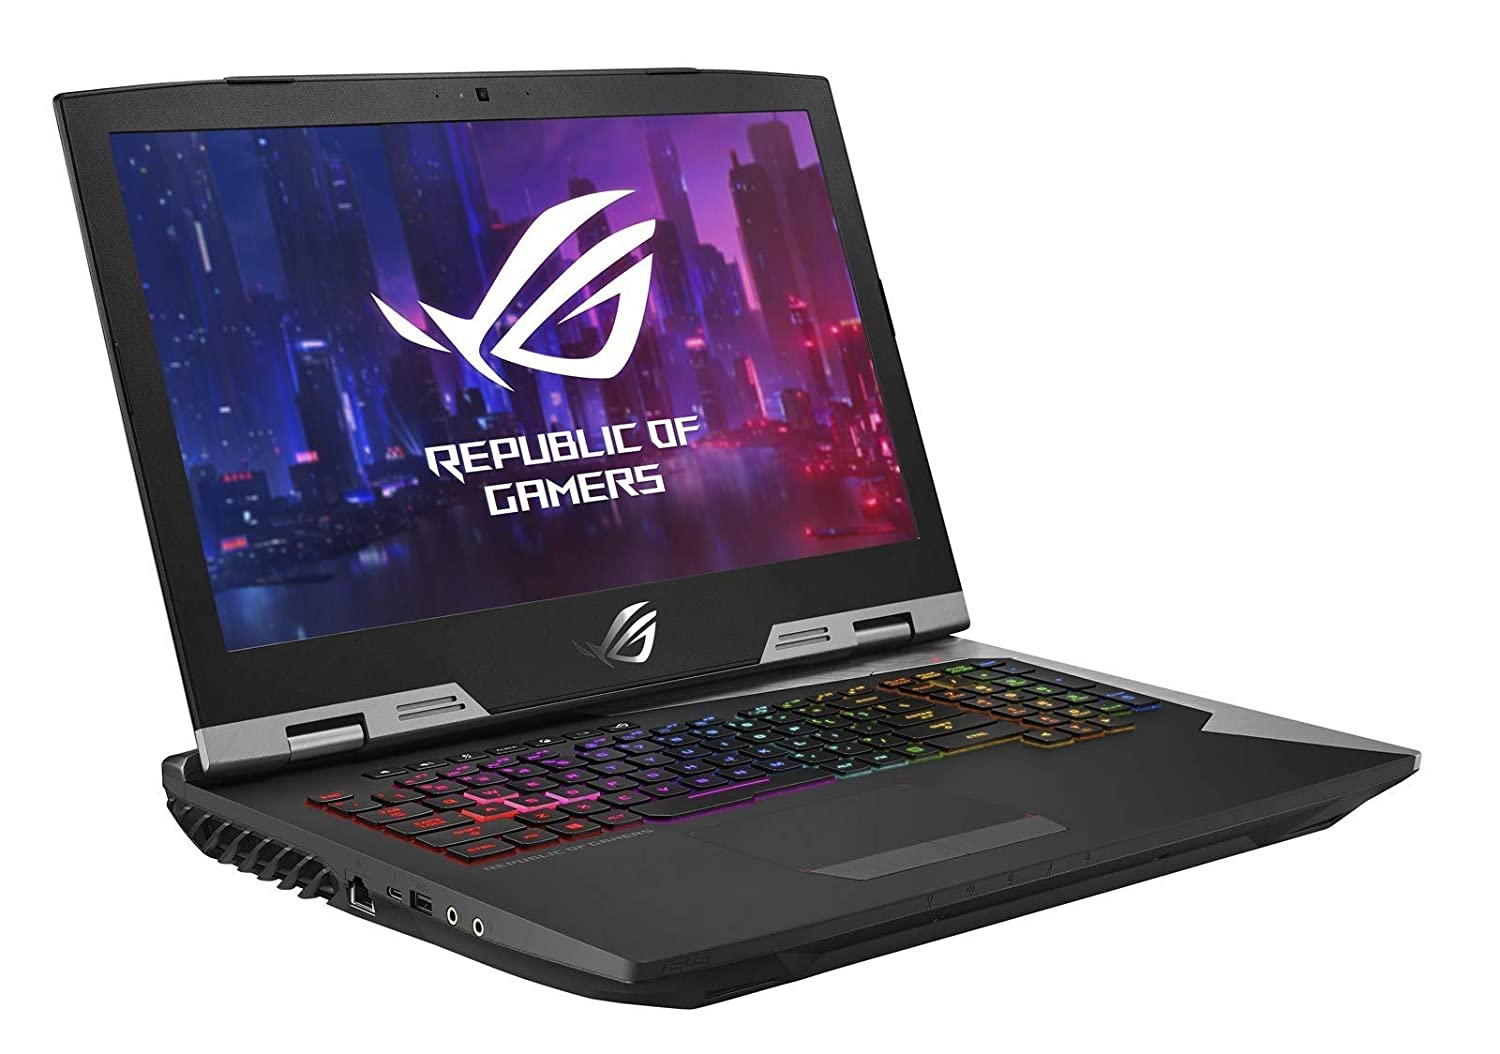 ASUS ROG G703GX-XB76 i7-9750H, 32GB RAM, 512GB NVMe SSD 1TB SSHD, NVIDIA RTX 2080 8GB, 17.3 Full HD 144Hz 3ms, Windows 10 Pro VR Ready Gaming Notebook